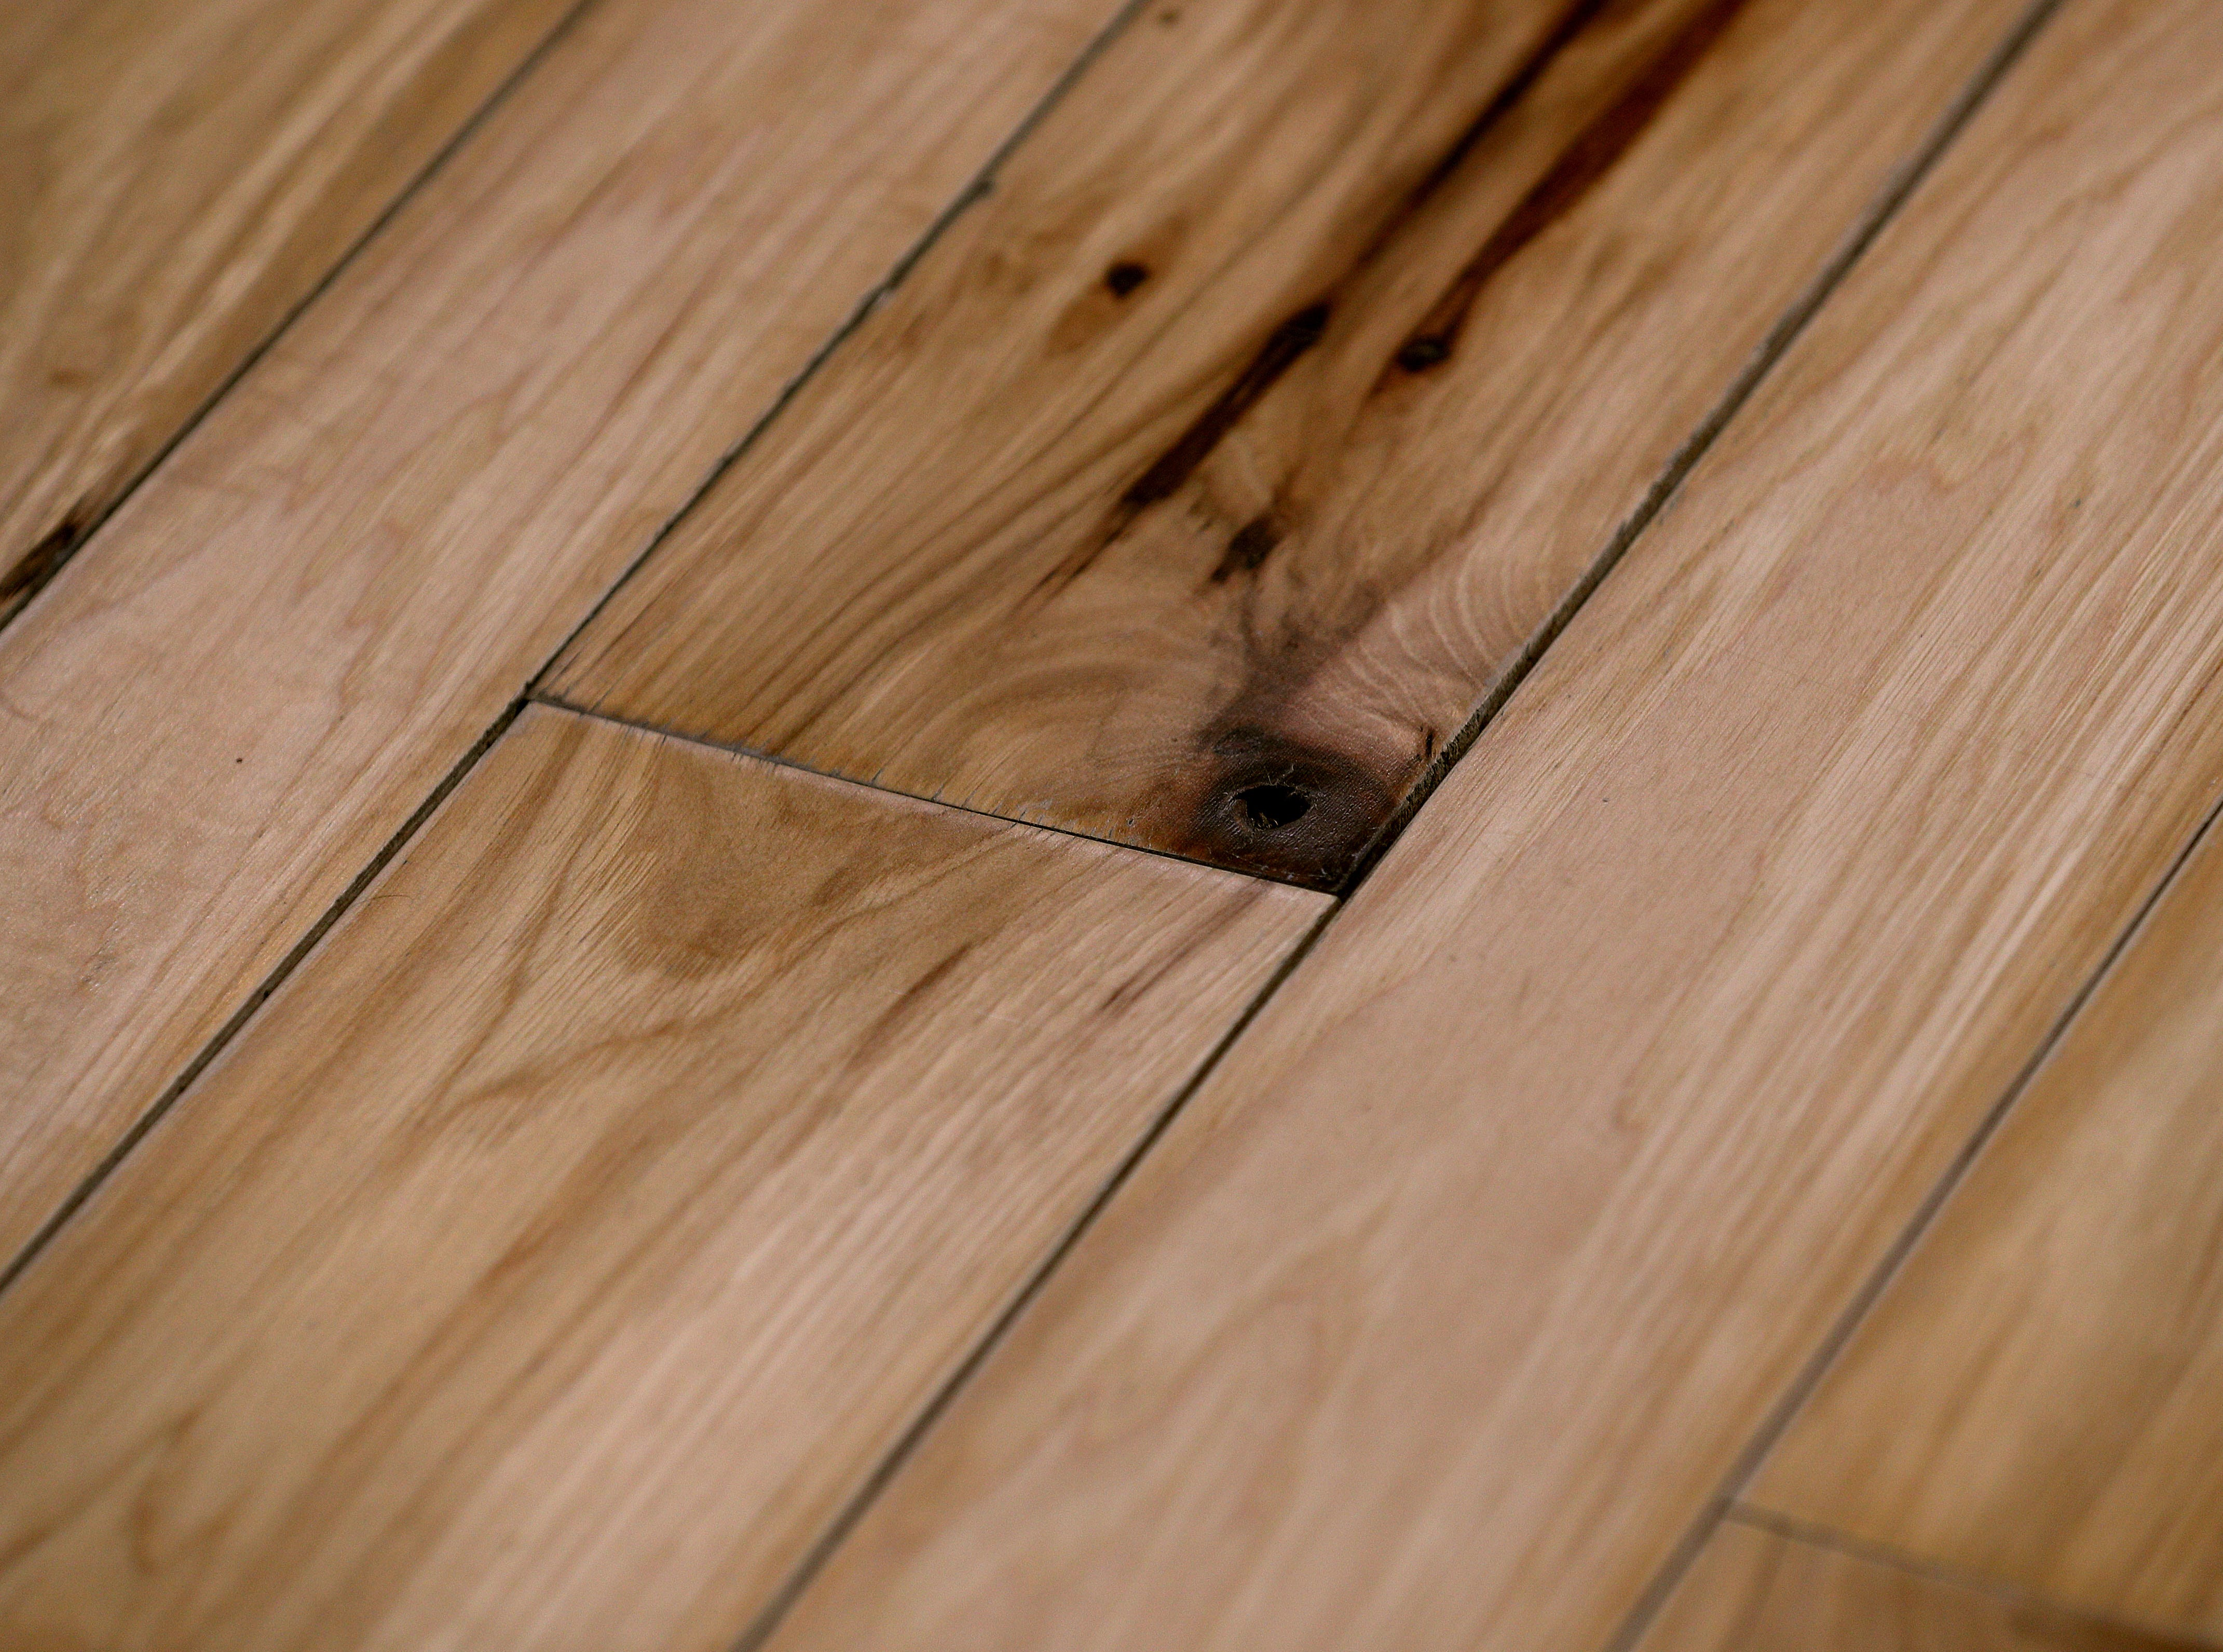 There are wood floors throughout the house.